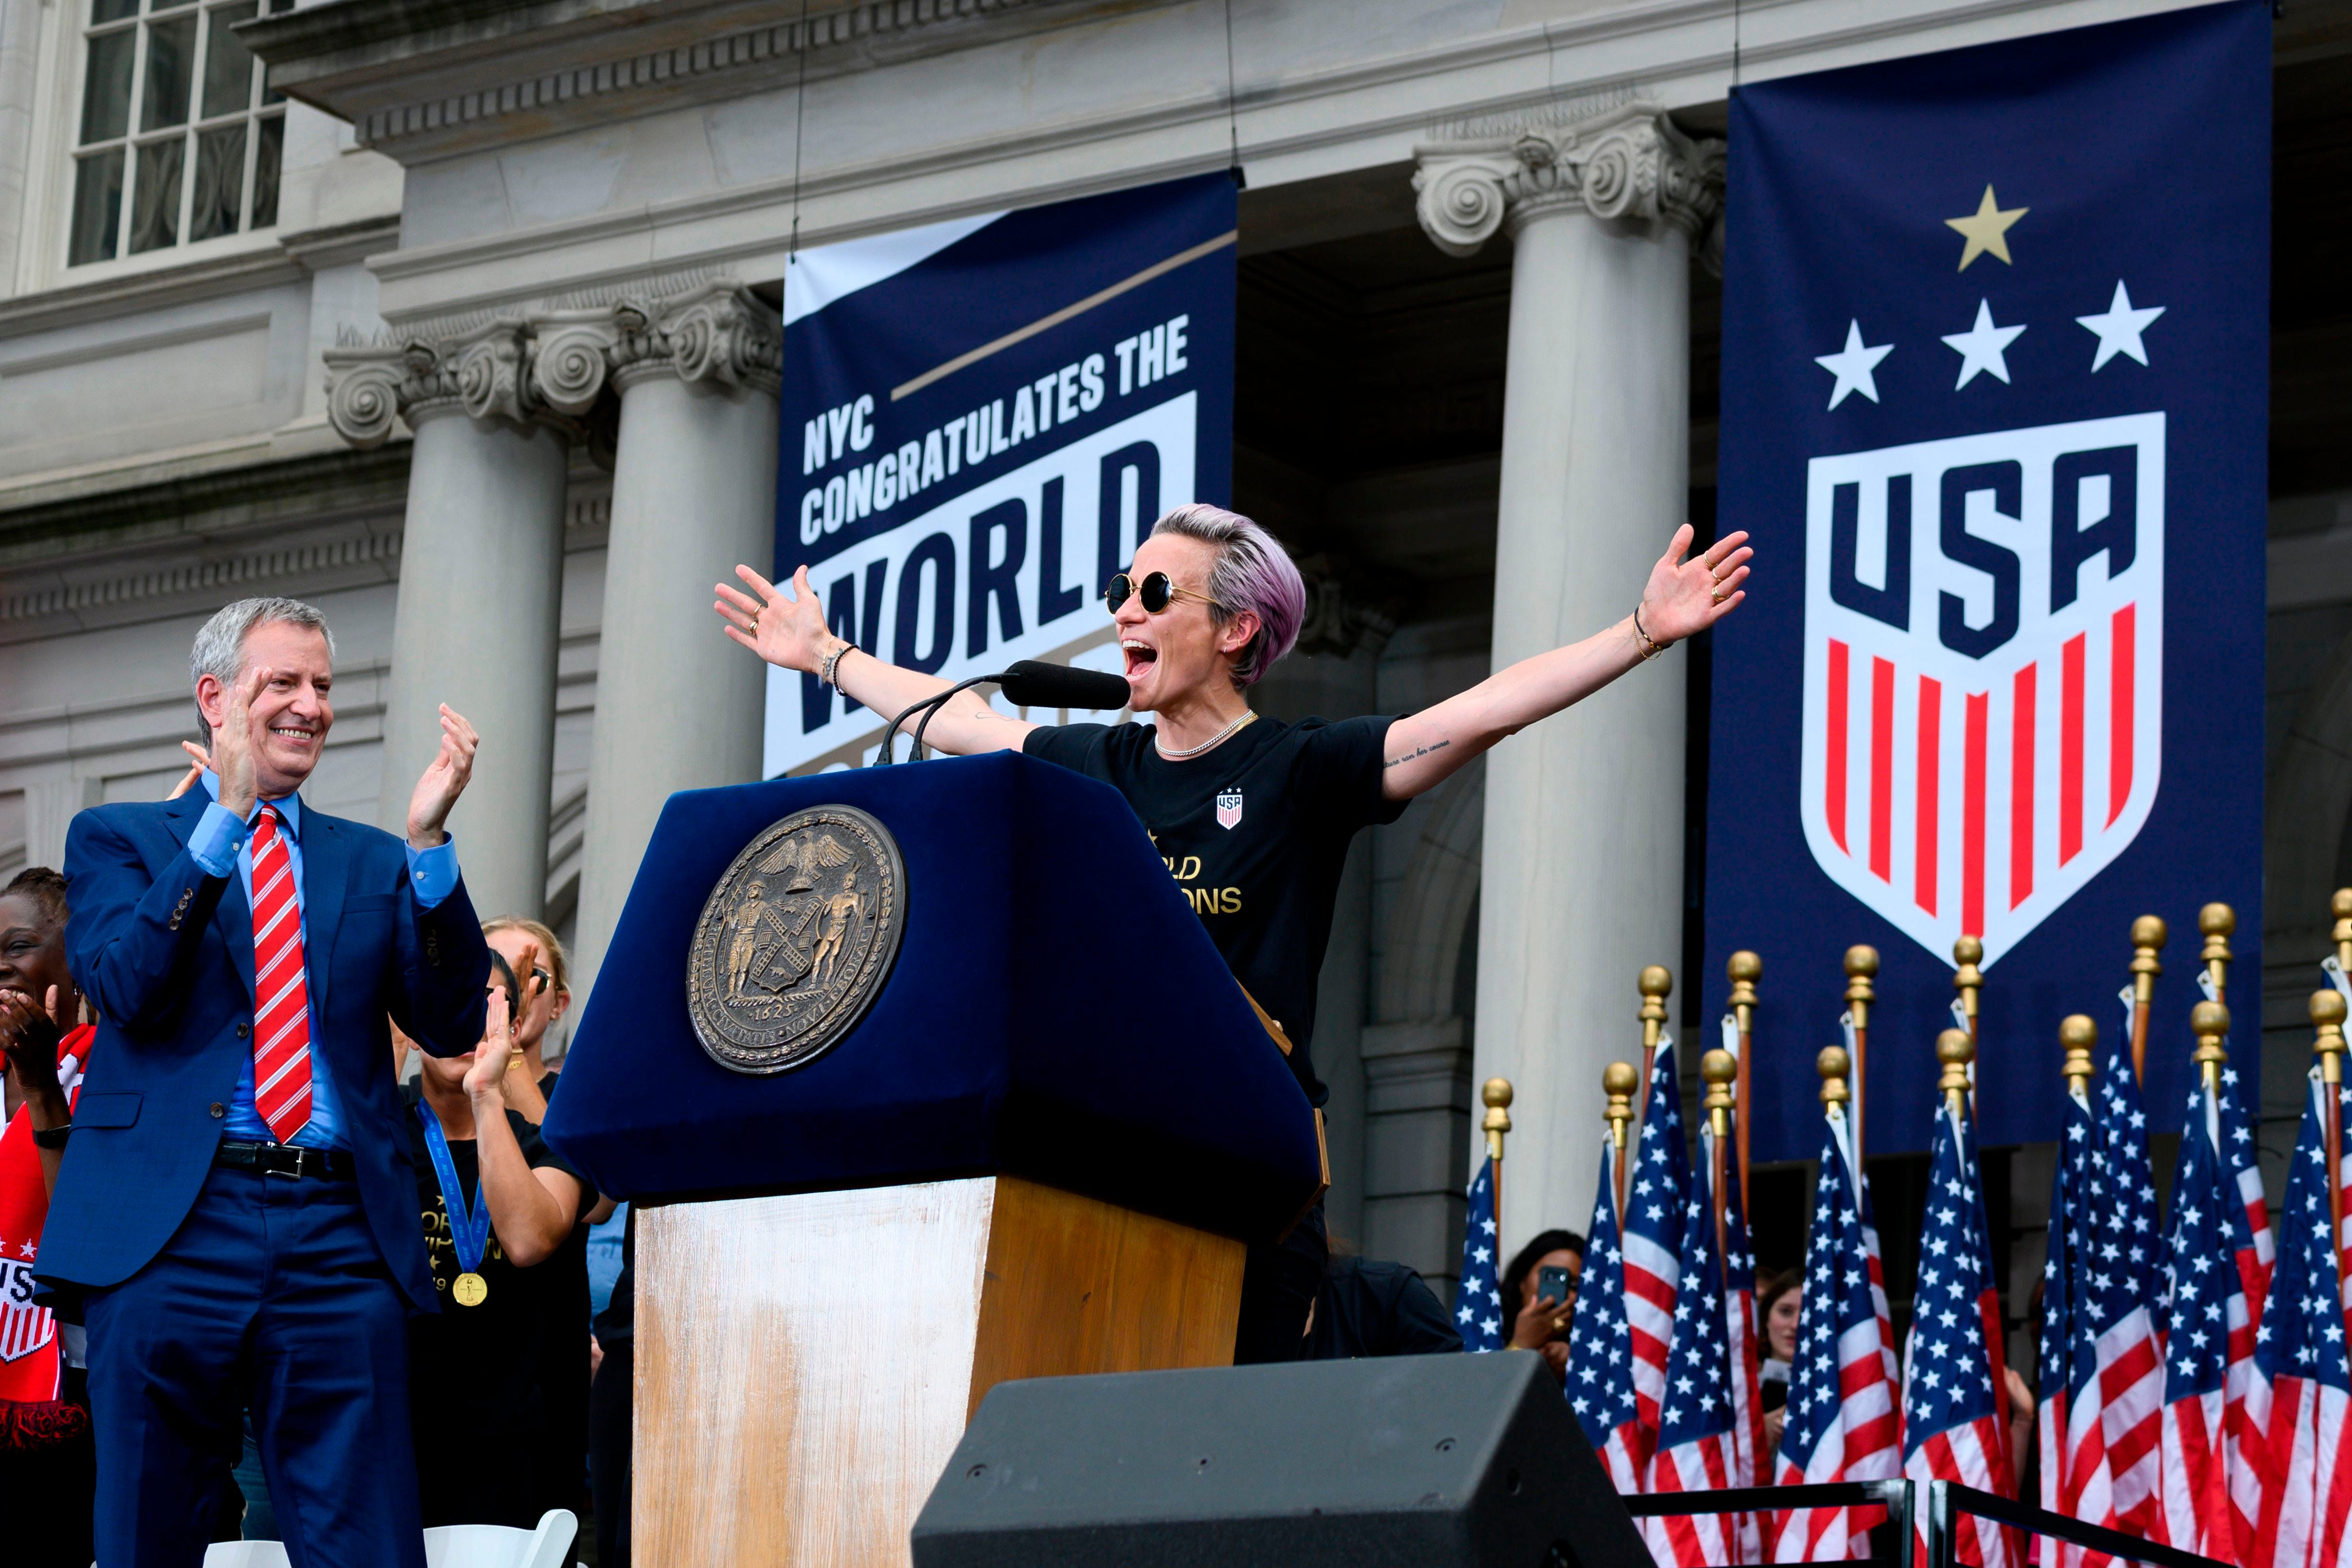 Megan Rapinoe calls on Lionel Messi, Cristiano Ronaldo to fight soccer's inequality issues